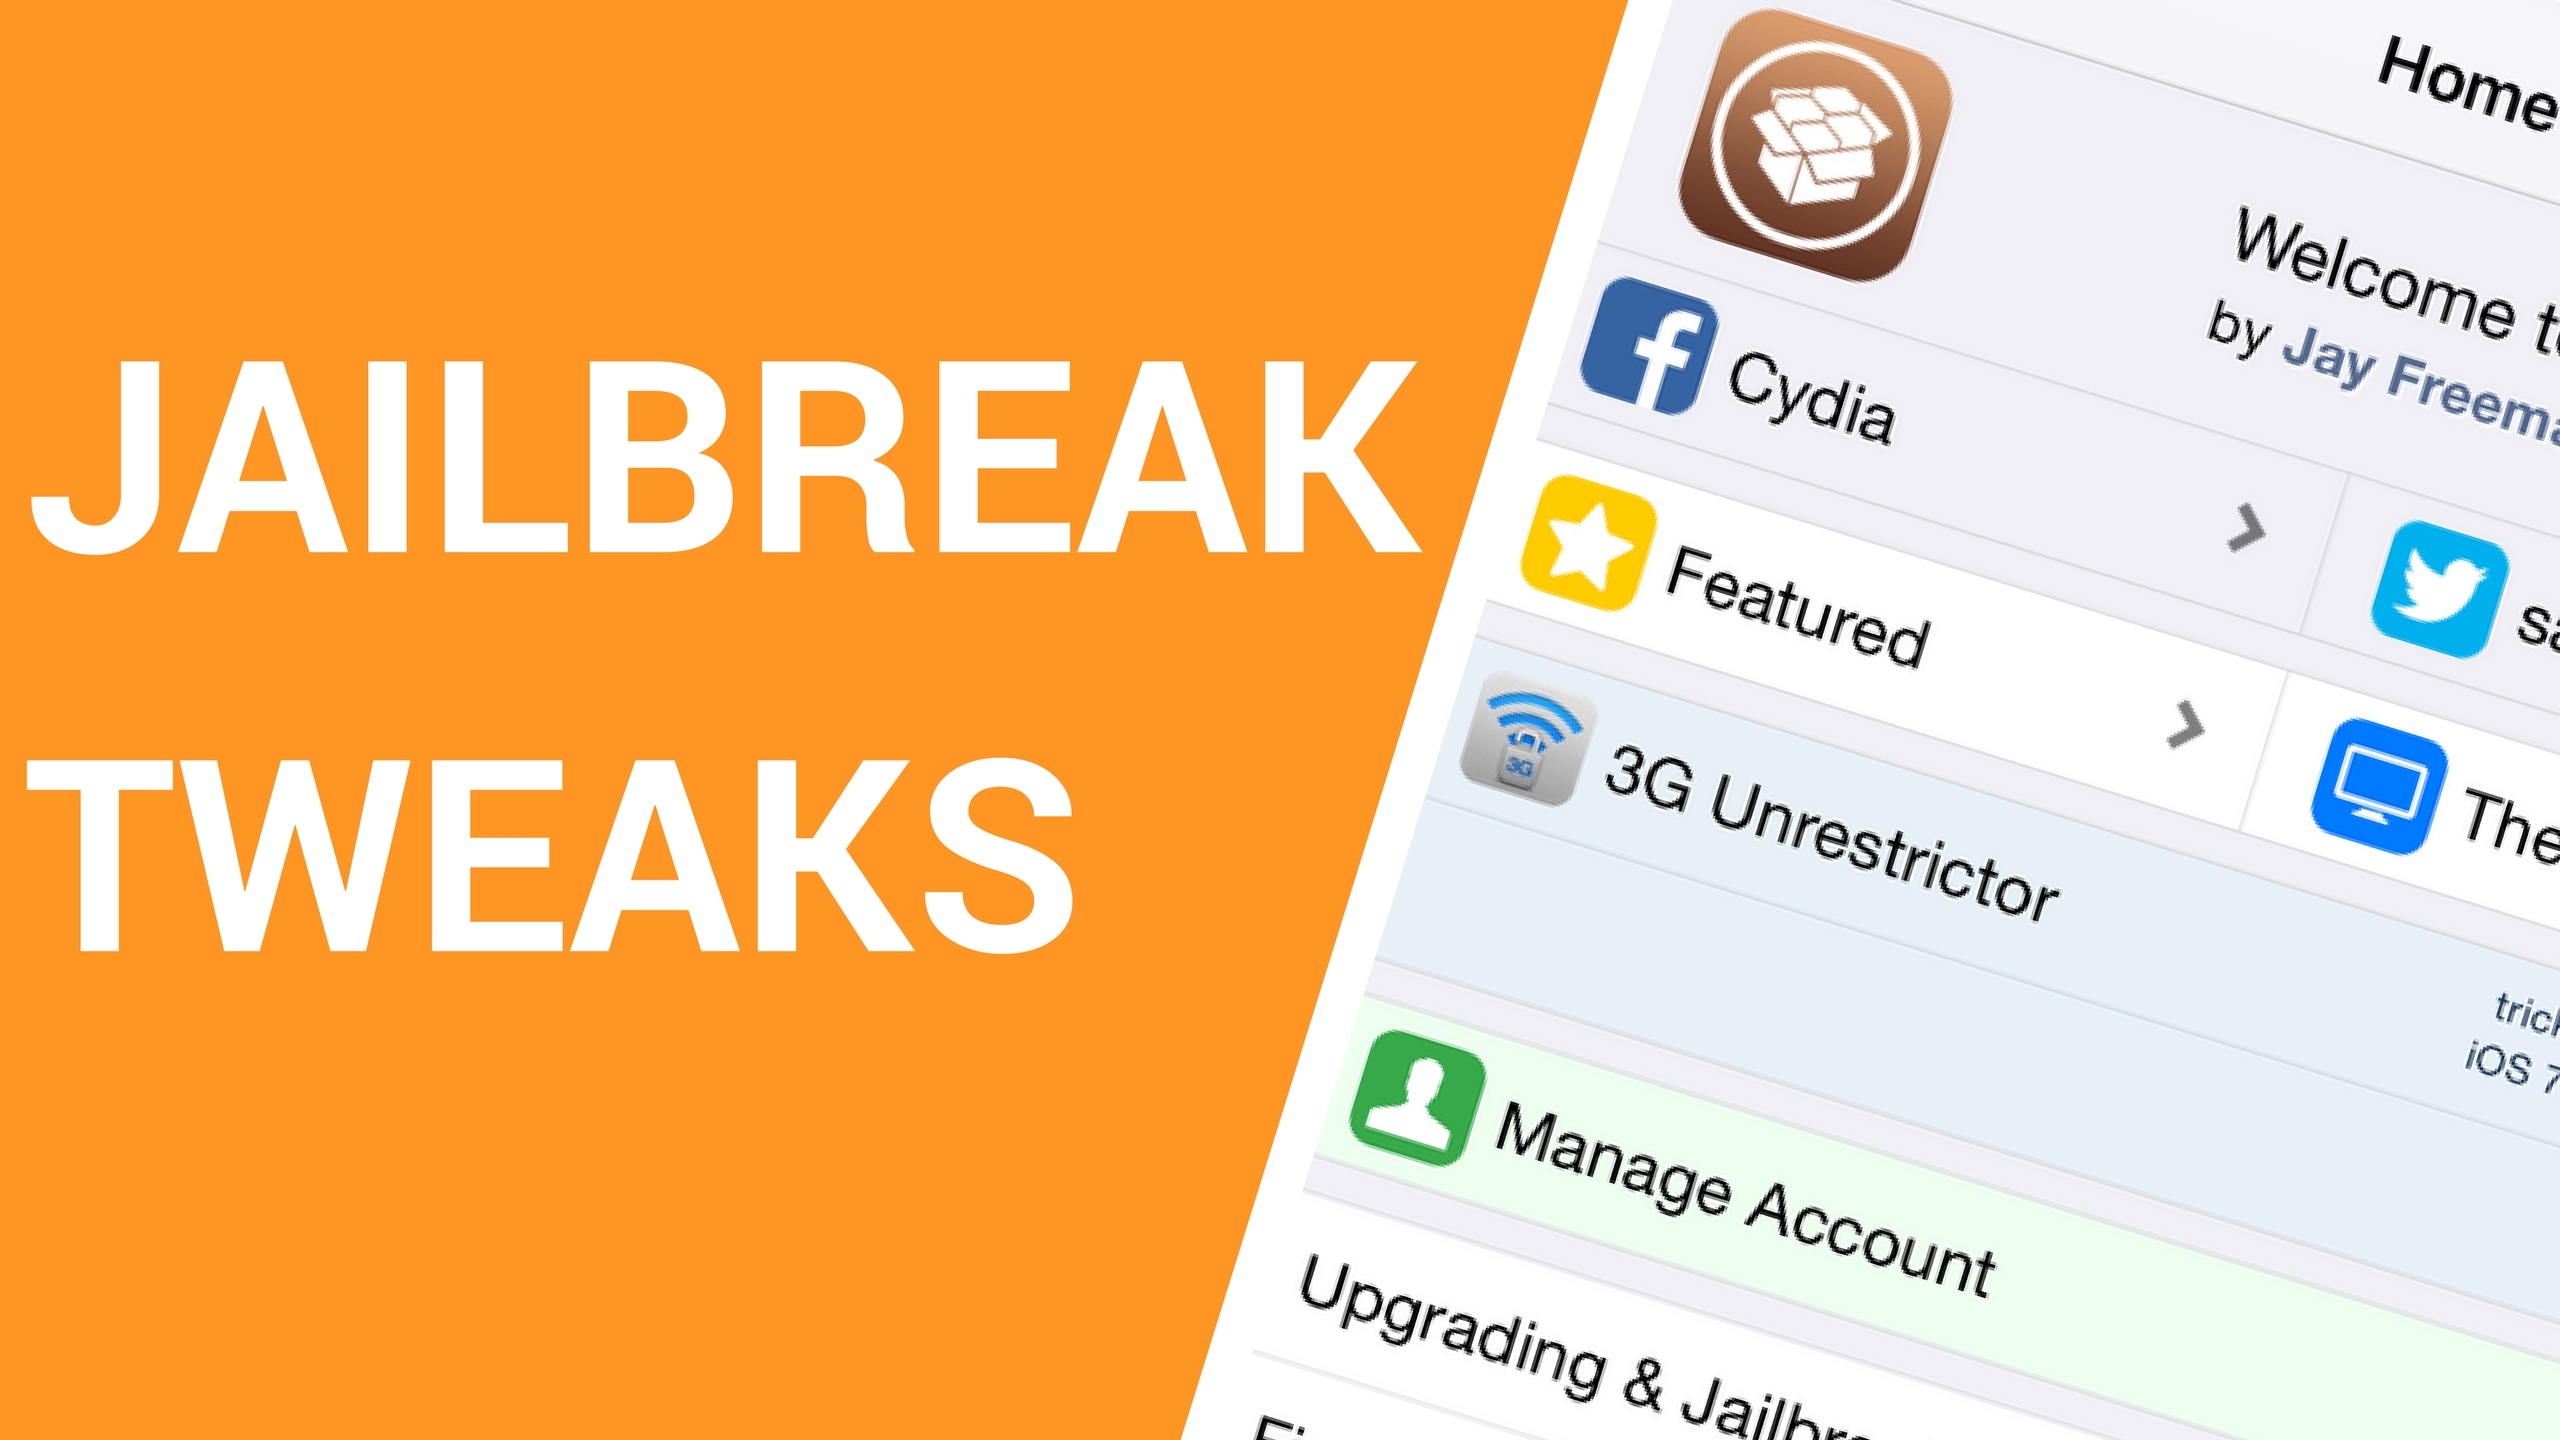 Jailbreak tweaks of the week: BetterAlerts, Chameleon